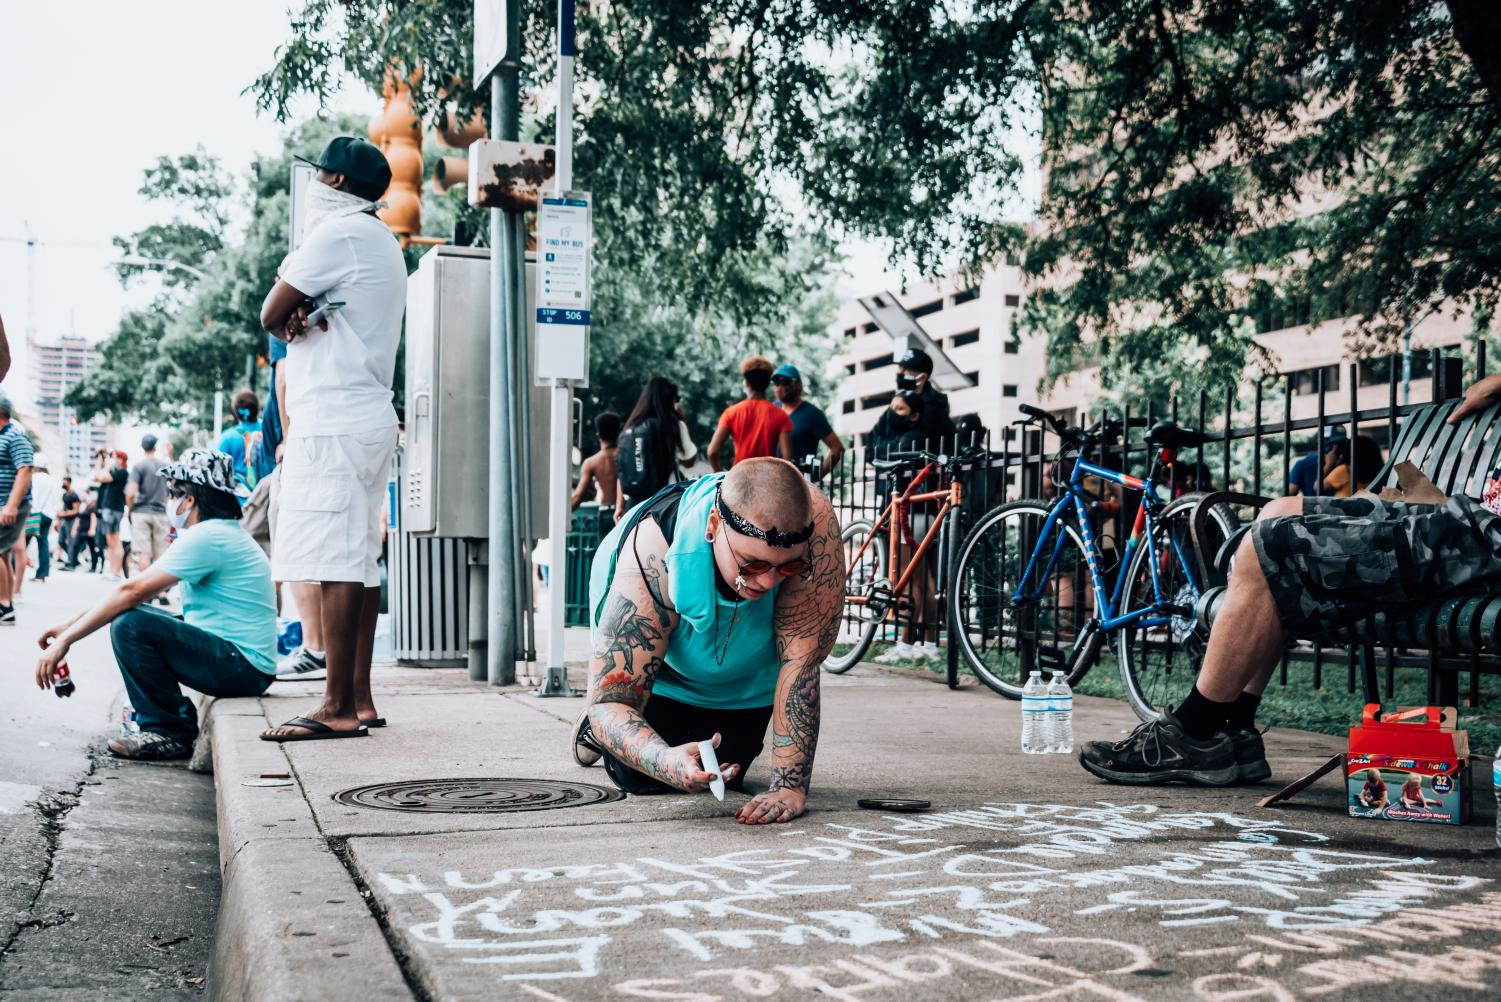 What+Do+People+Think+of+The+Austin+BLM+Protests%3F